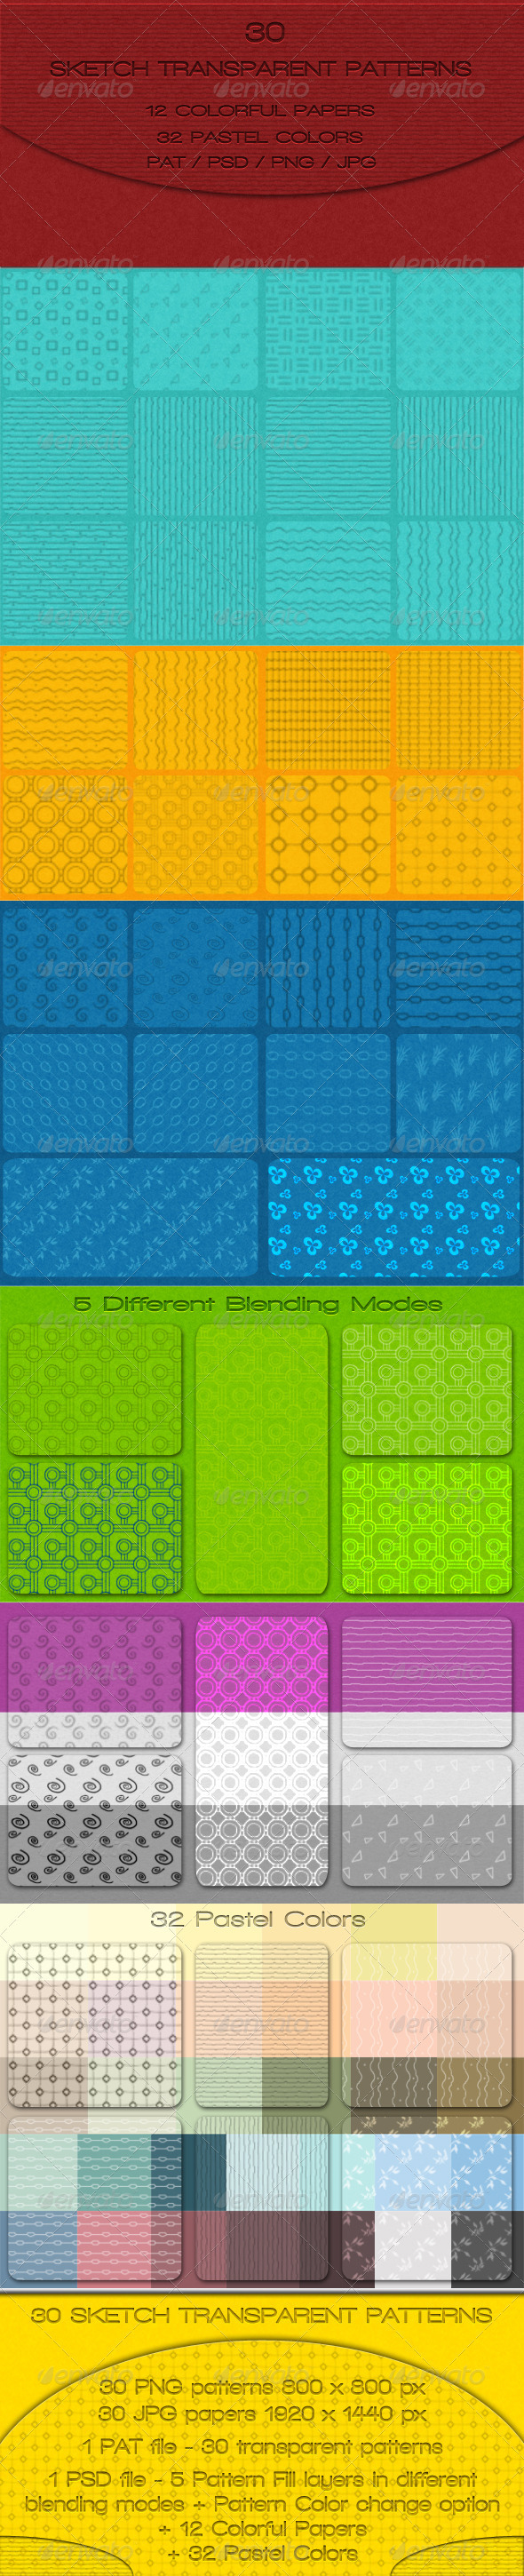 30 Sketch Transparent Patterns - Textures / Fills / Patterns Photoshop